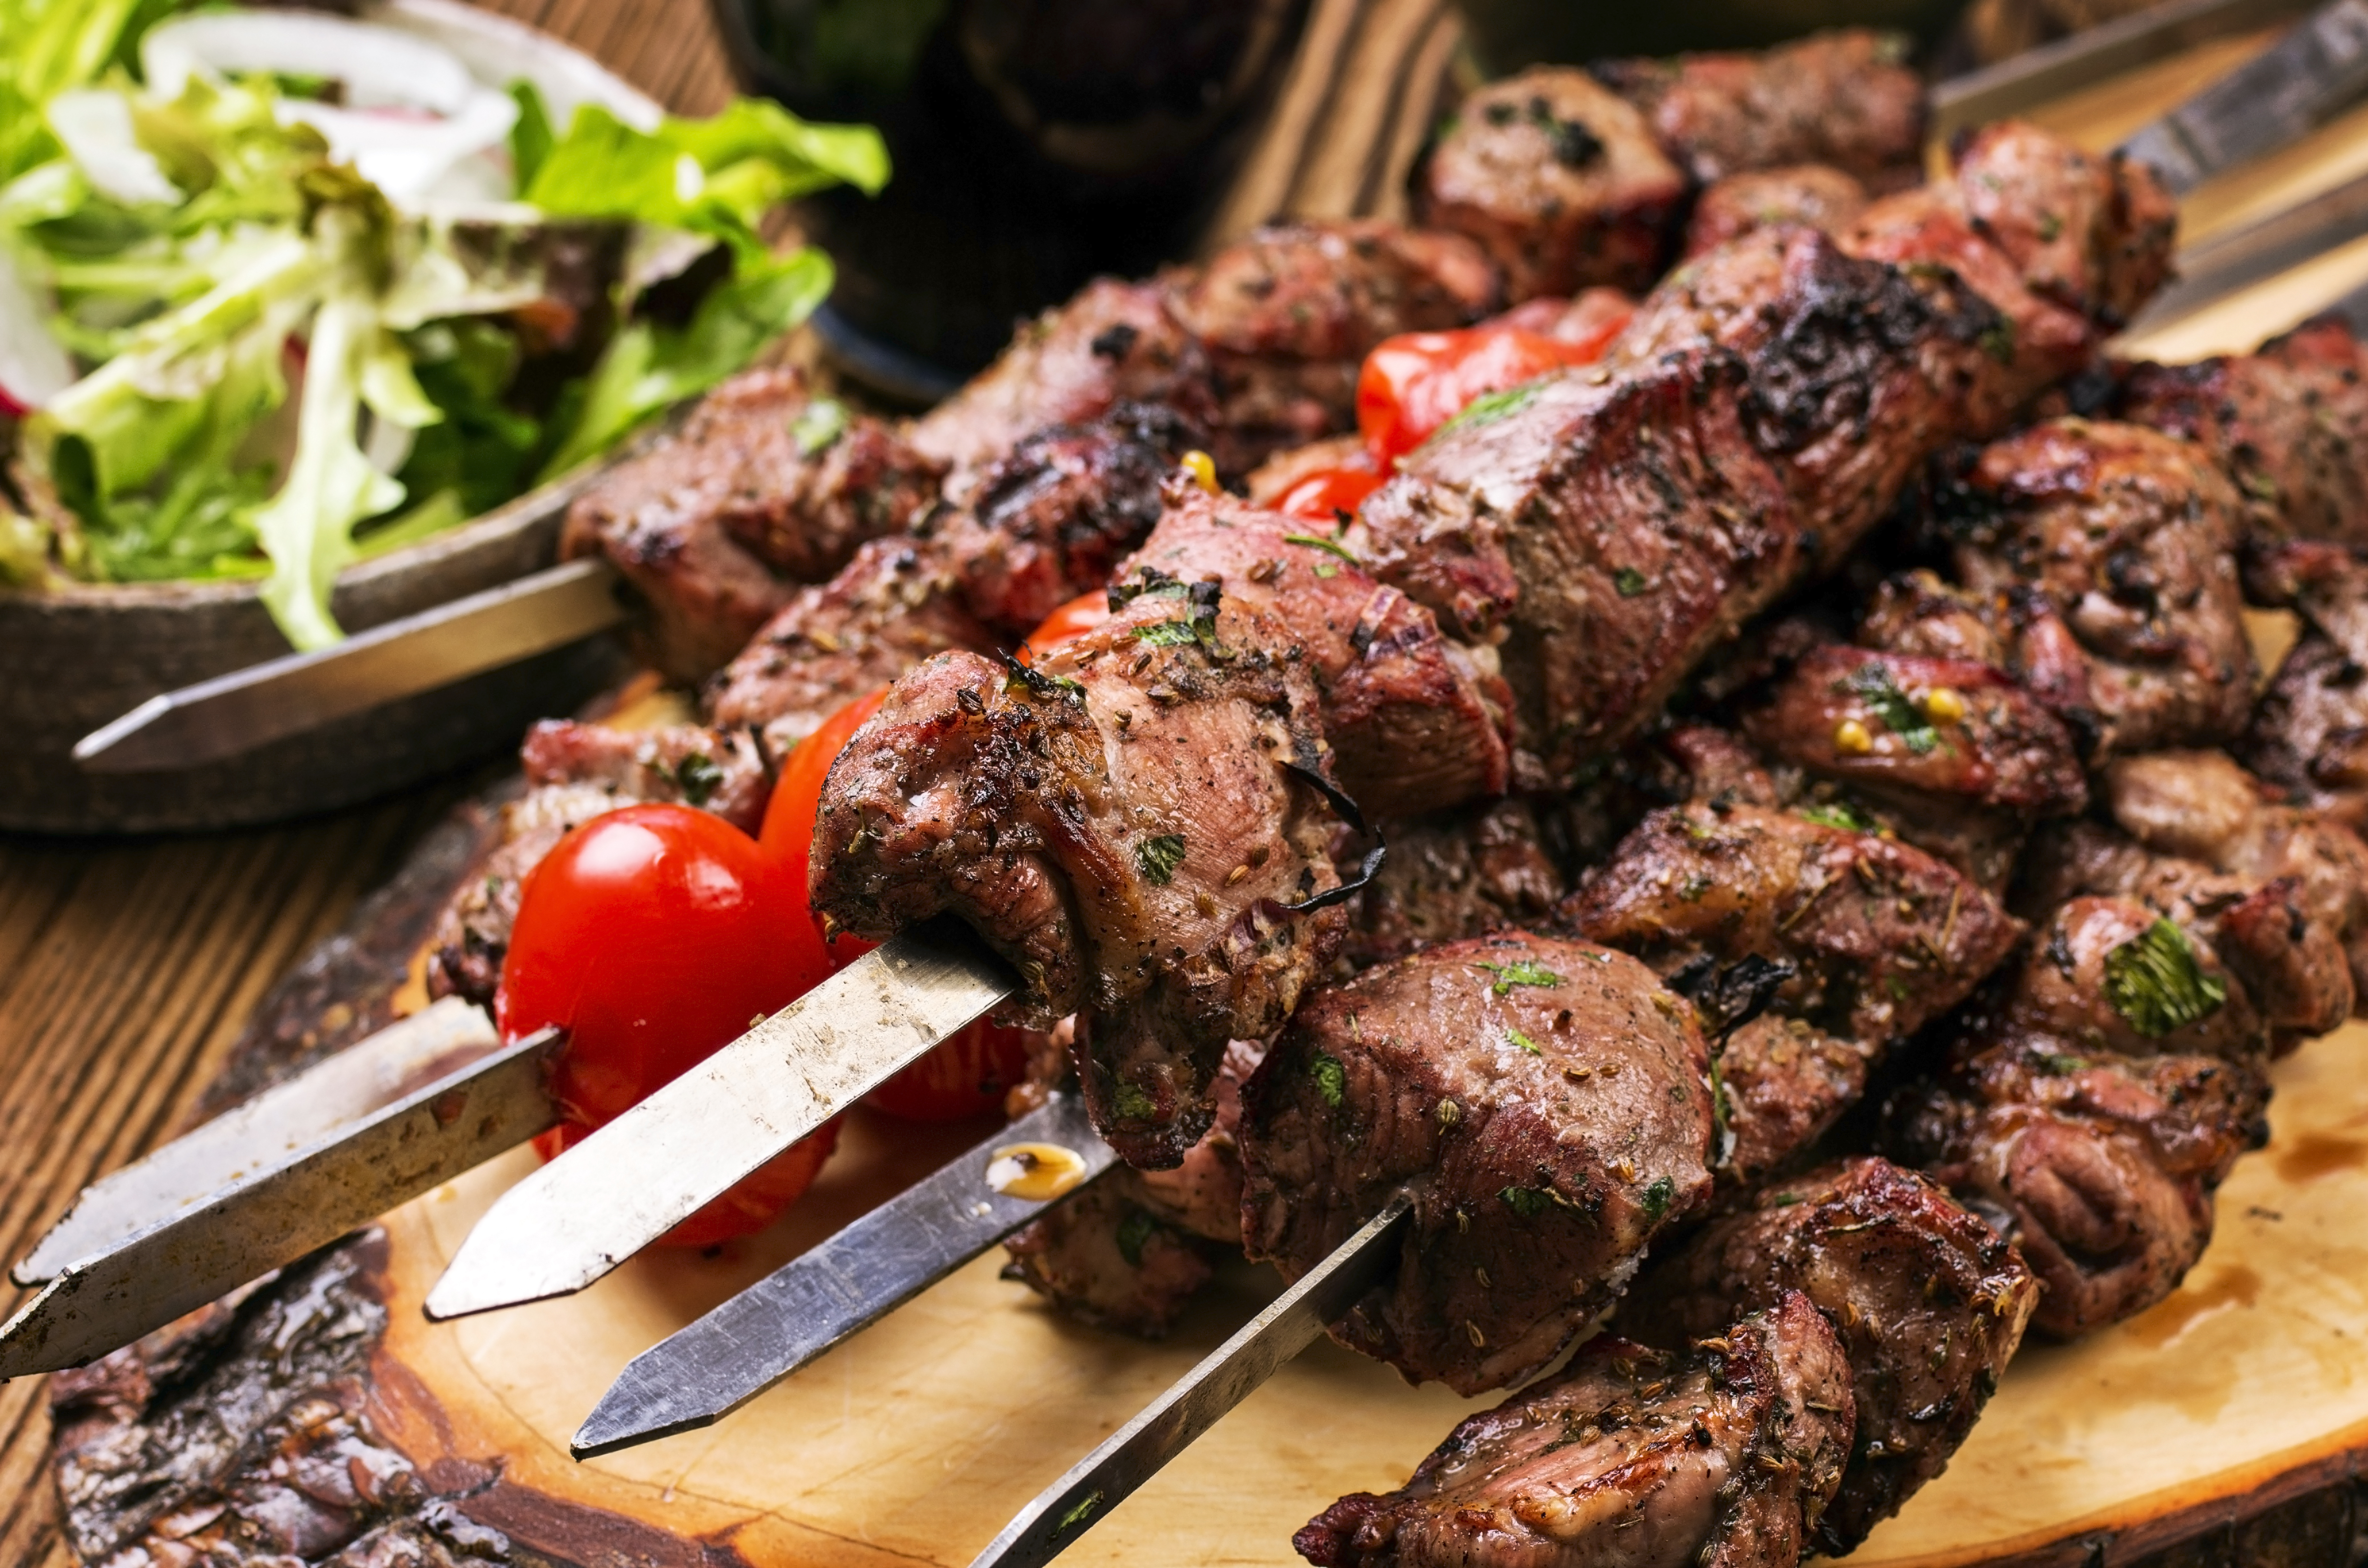 Images Shashlik Food Meat Products 4928x3264 Images, Photos, Reviews